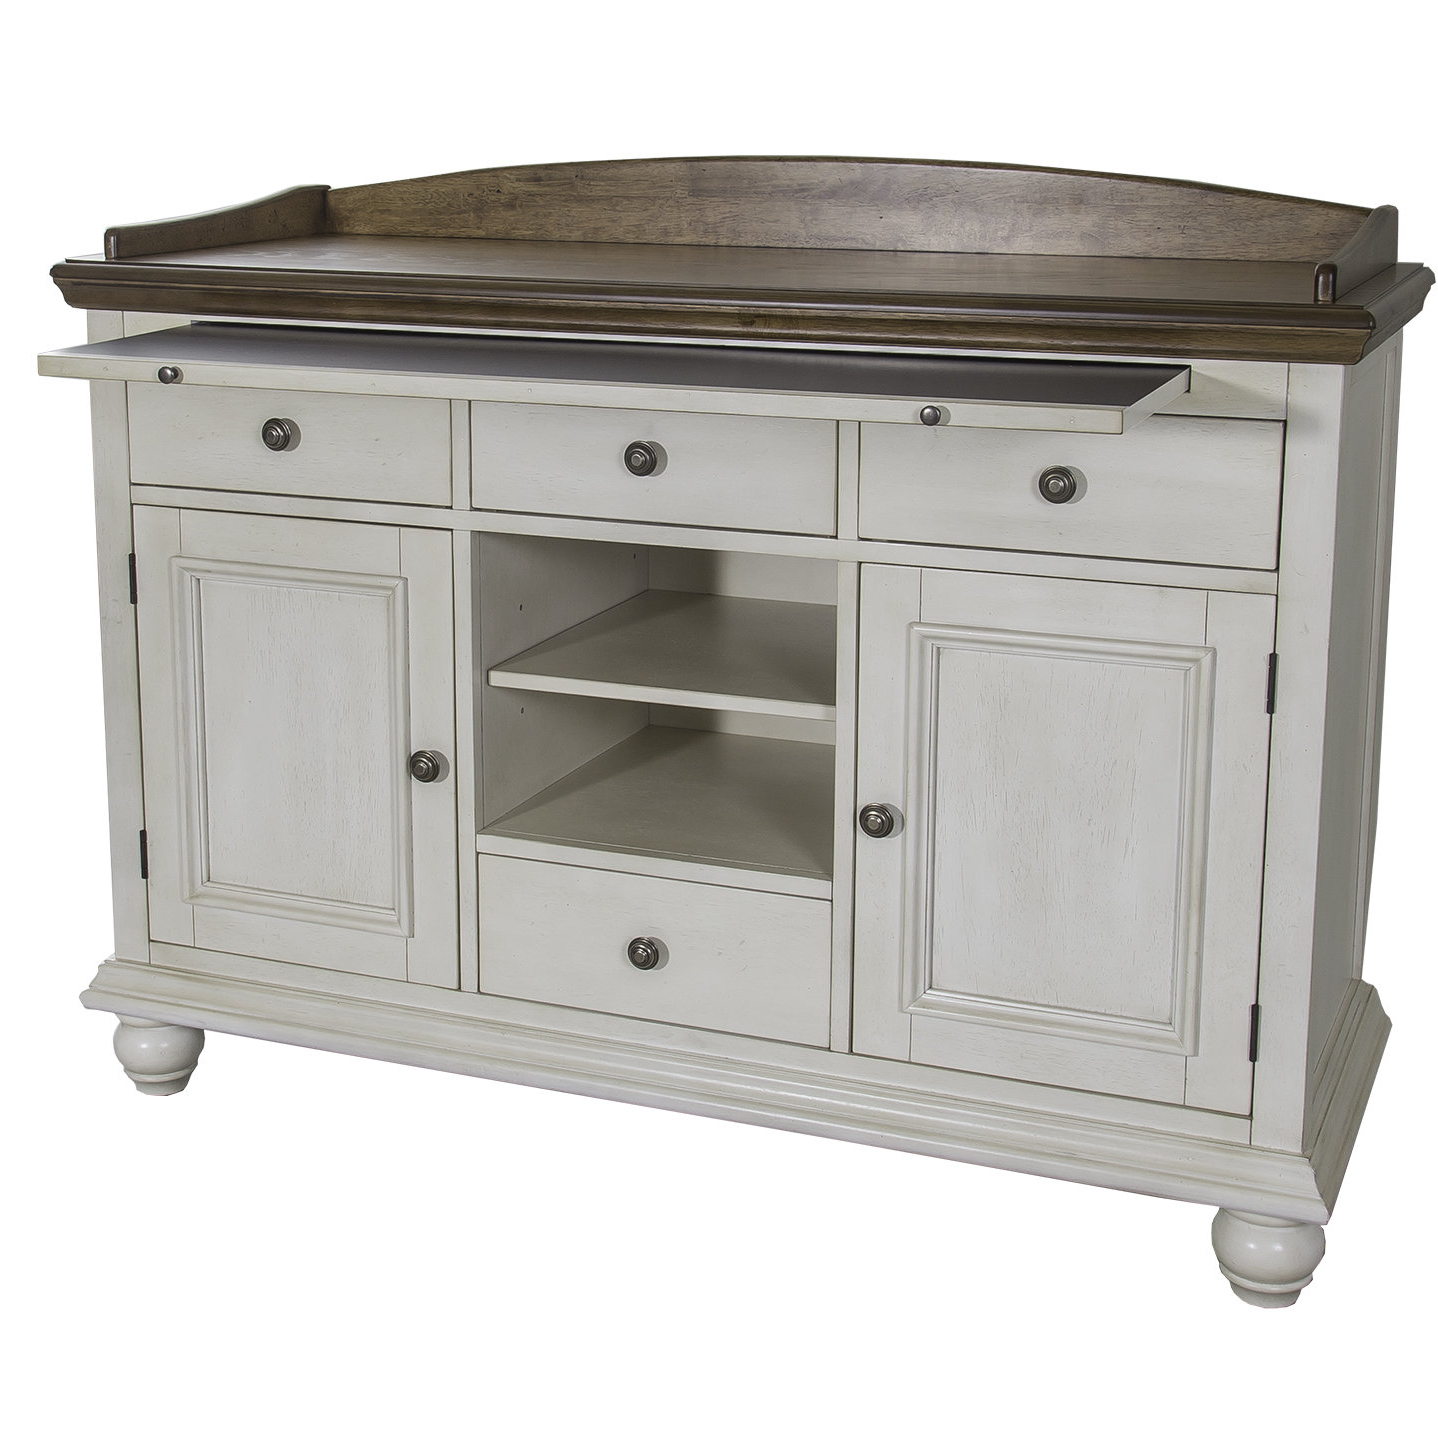 Farmhouse & Rustic Rubberwood Sideboards & Buffets (View 5 of 20)